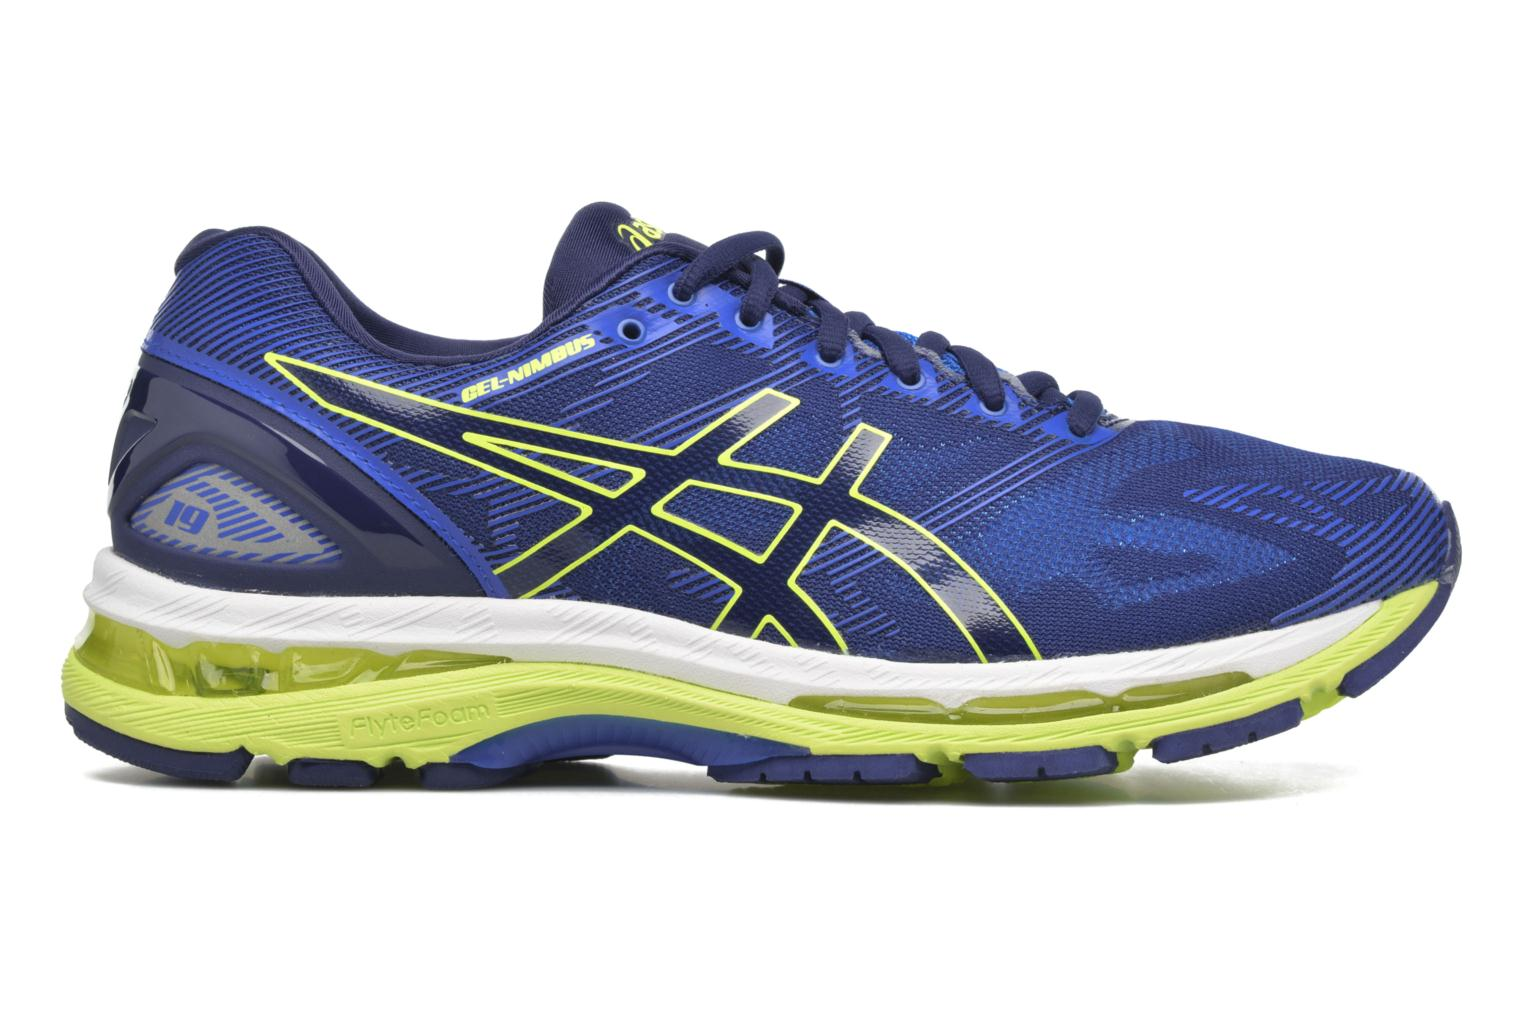 Gel-Nimbus 19 Indigo Blue/Safety Yellow/Electric Blue